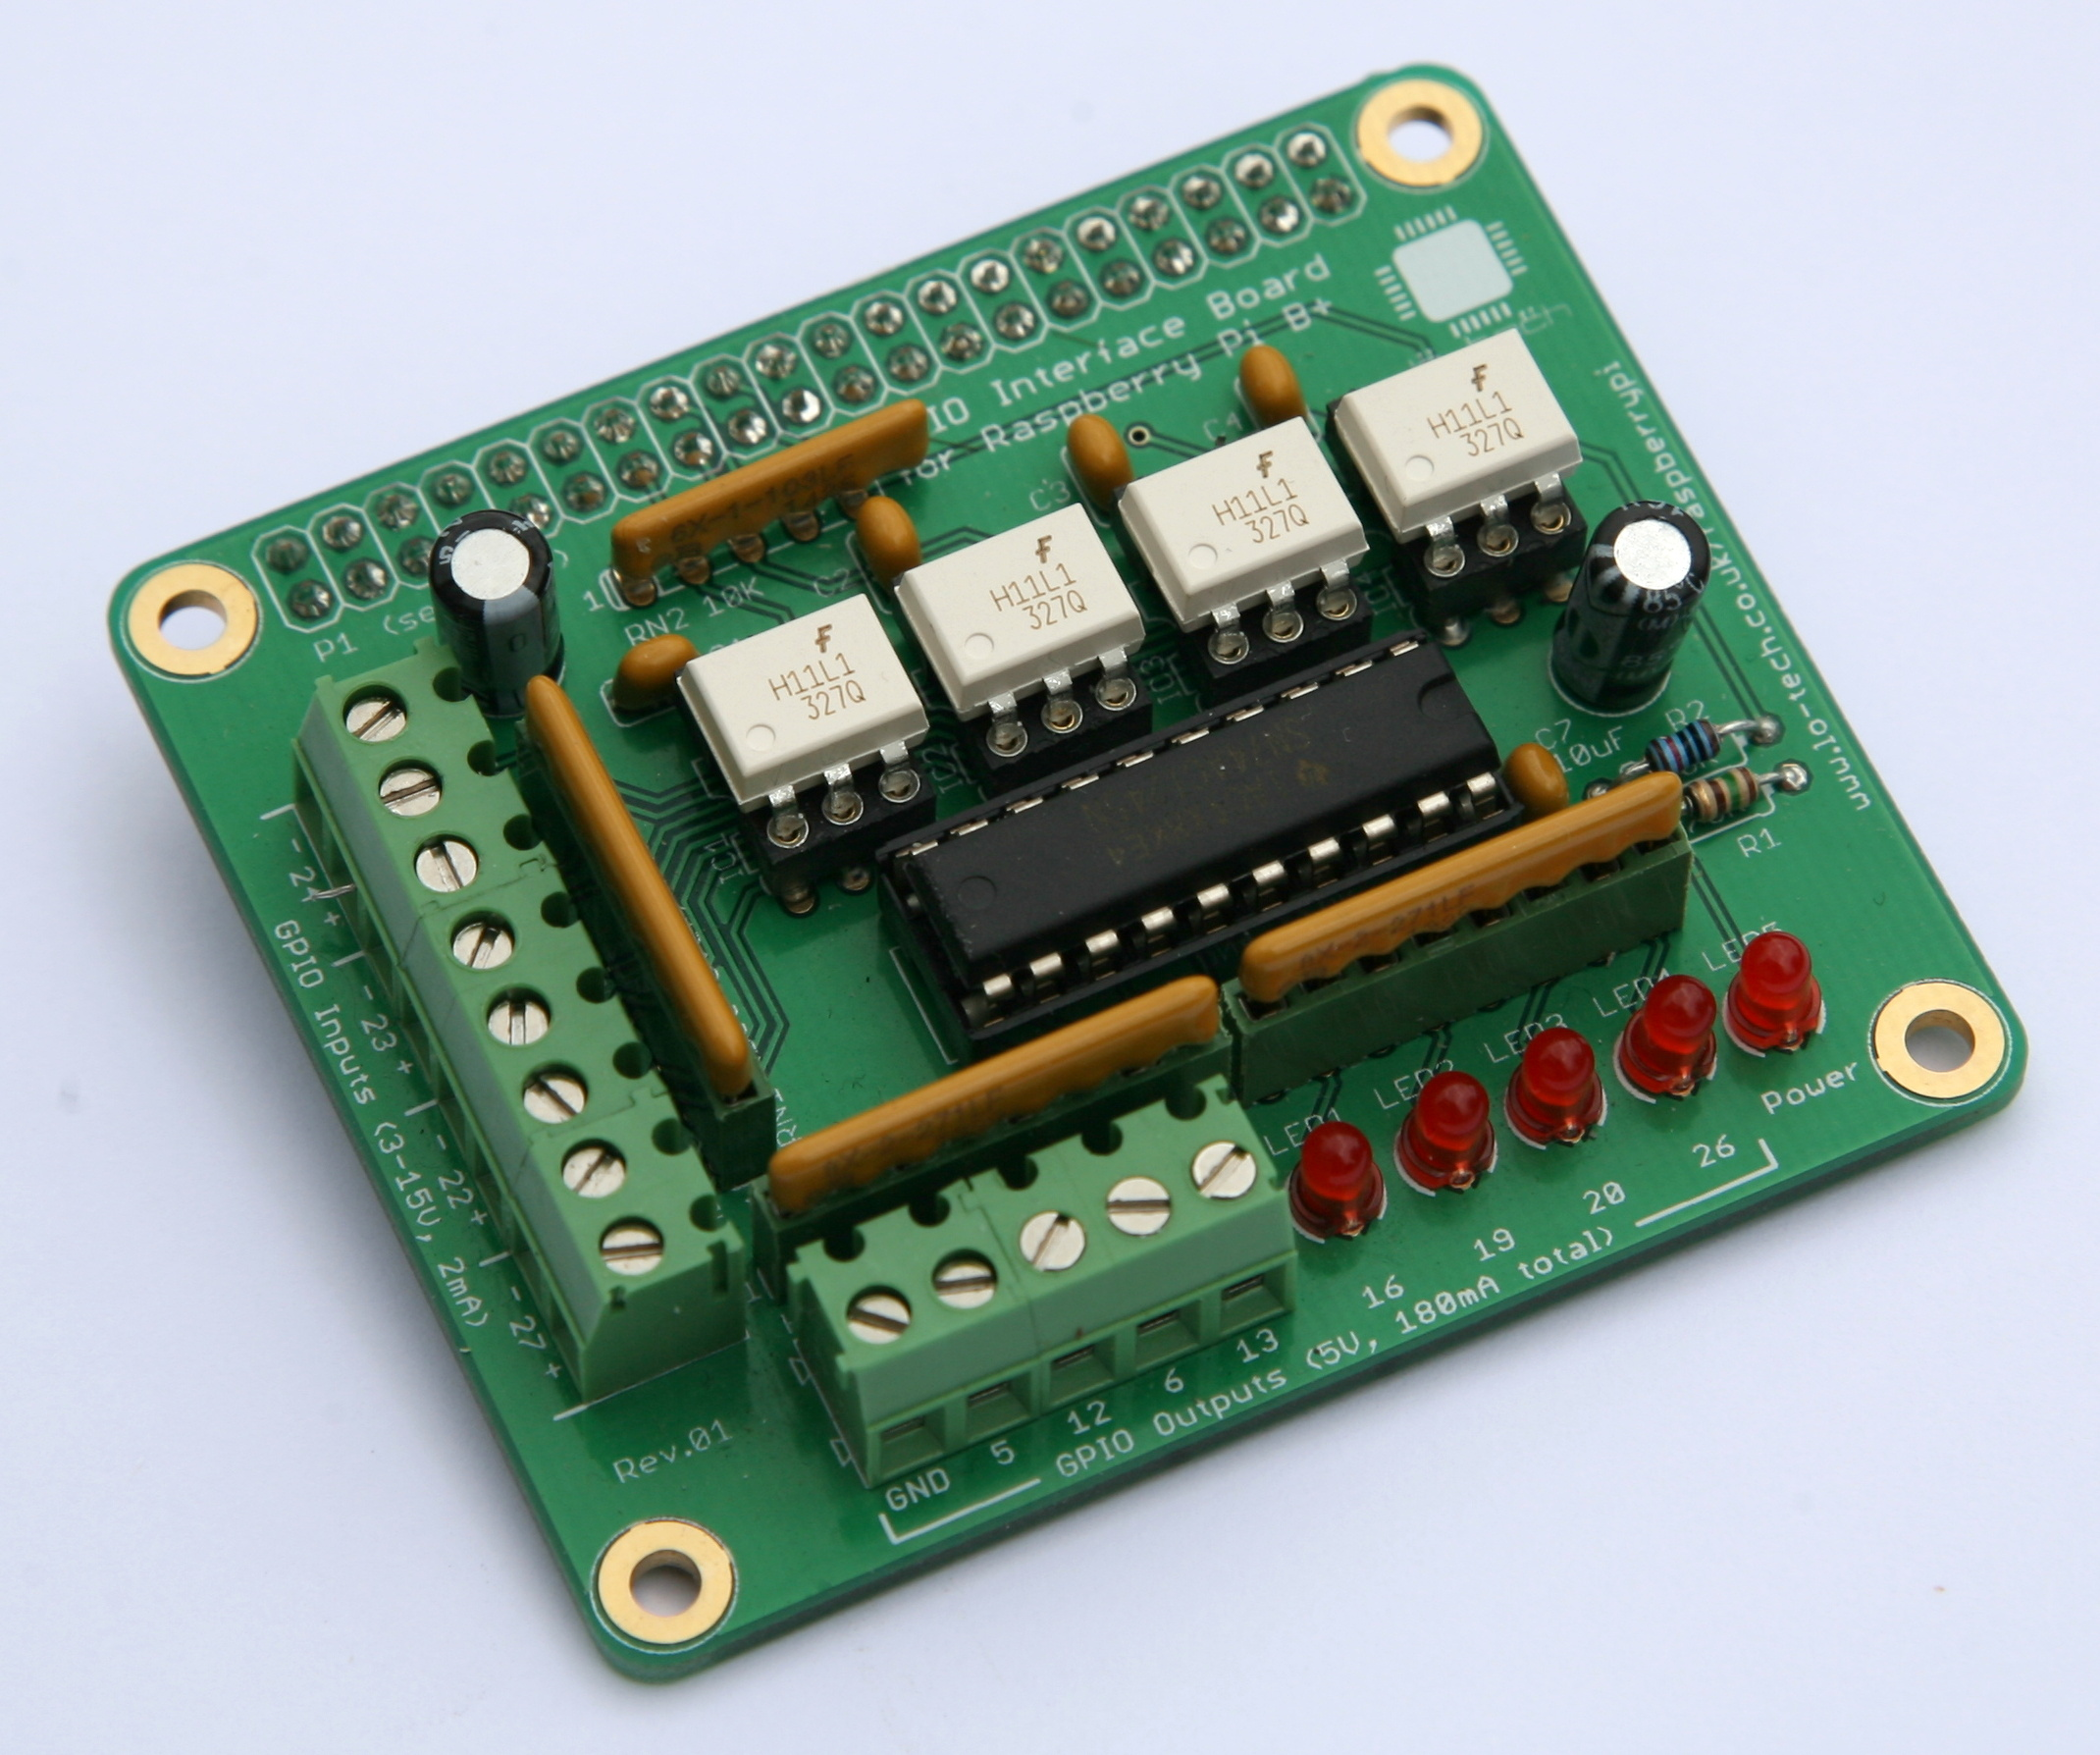 Lo-tech-gpio-interface-board-front-assembled